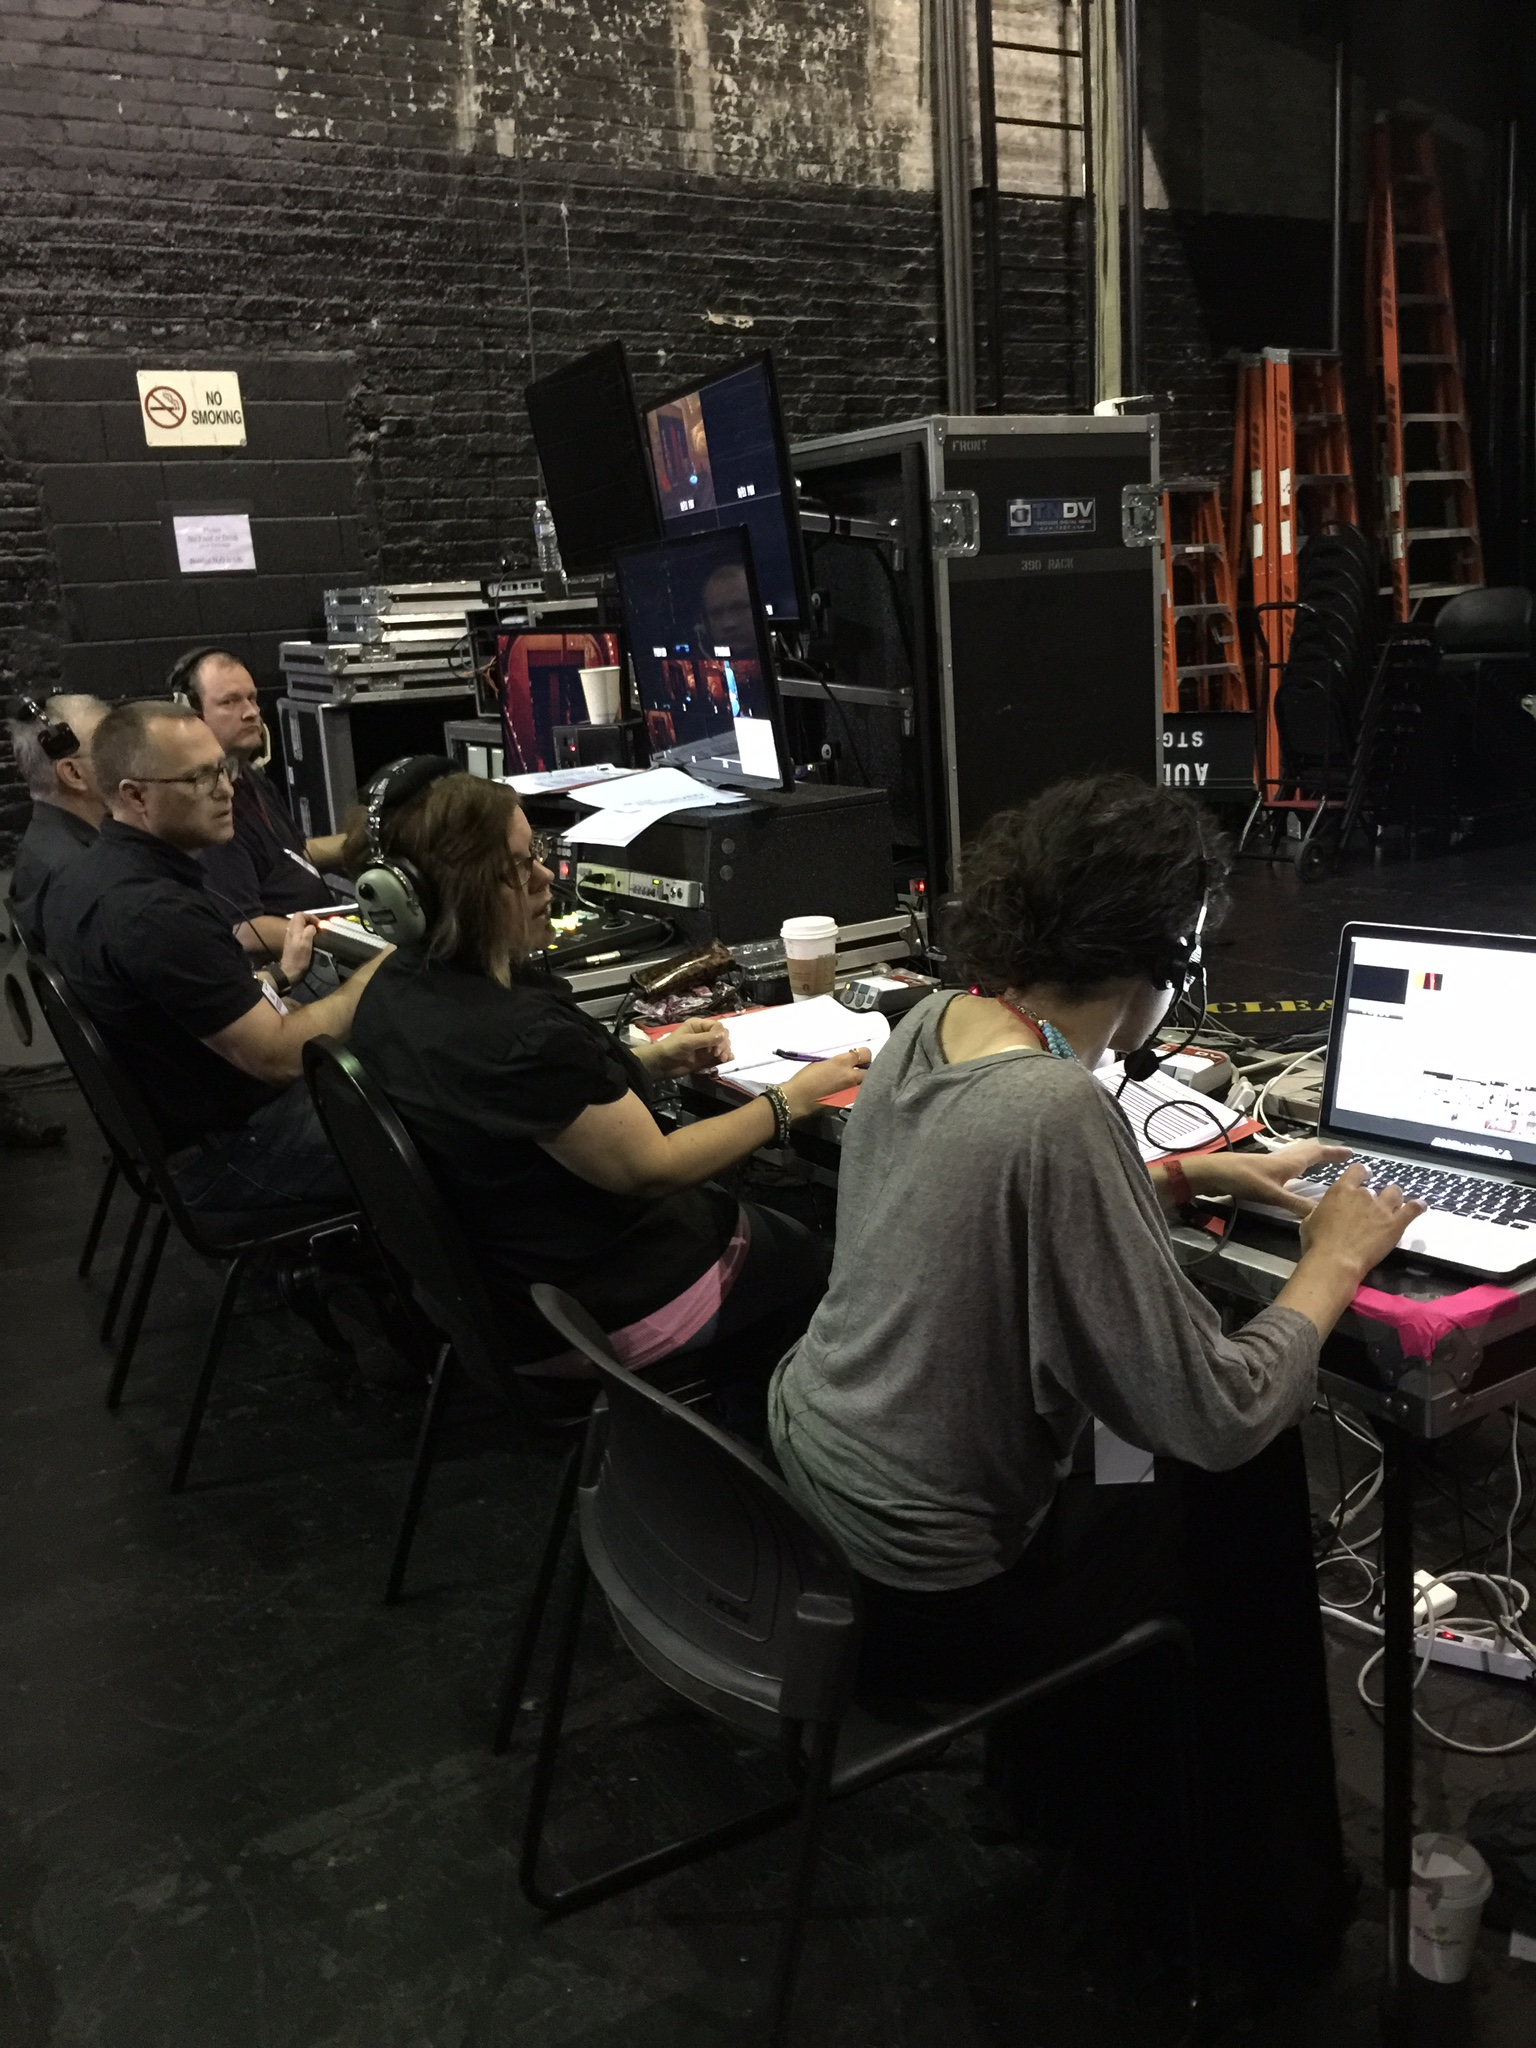 The backstage tech team working to make things as smooth and perfect as possible.